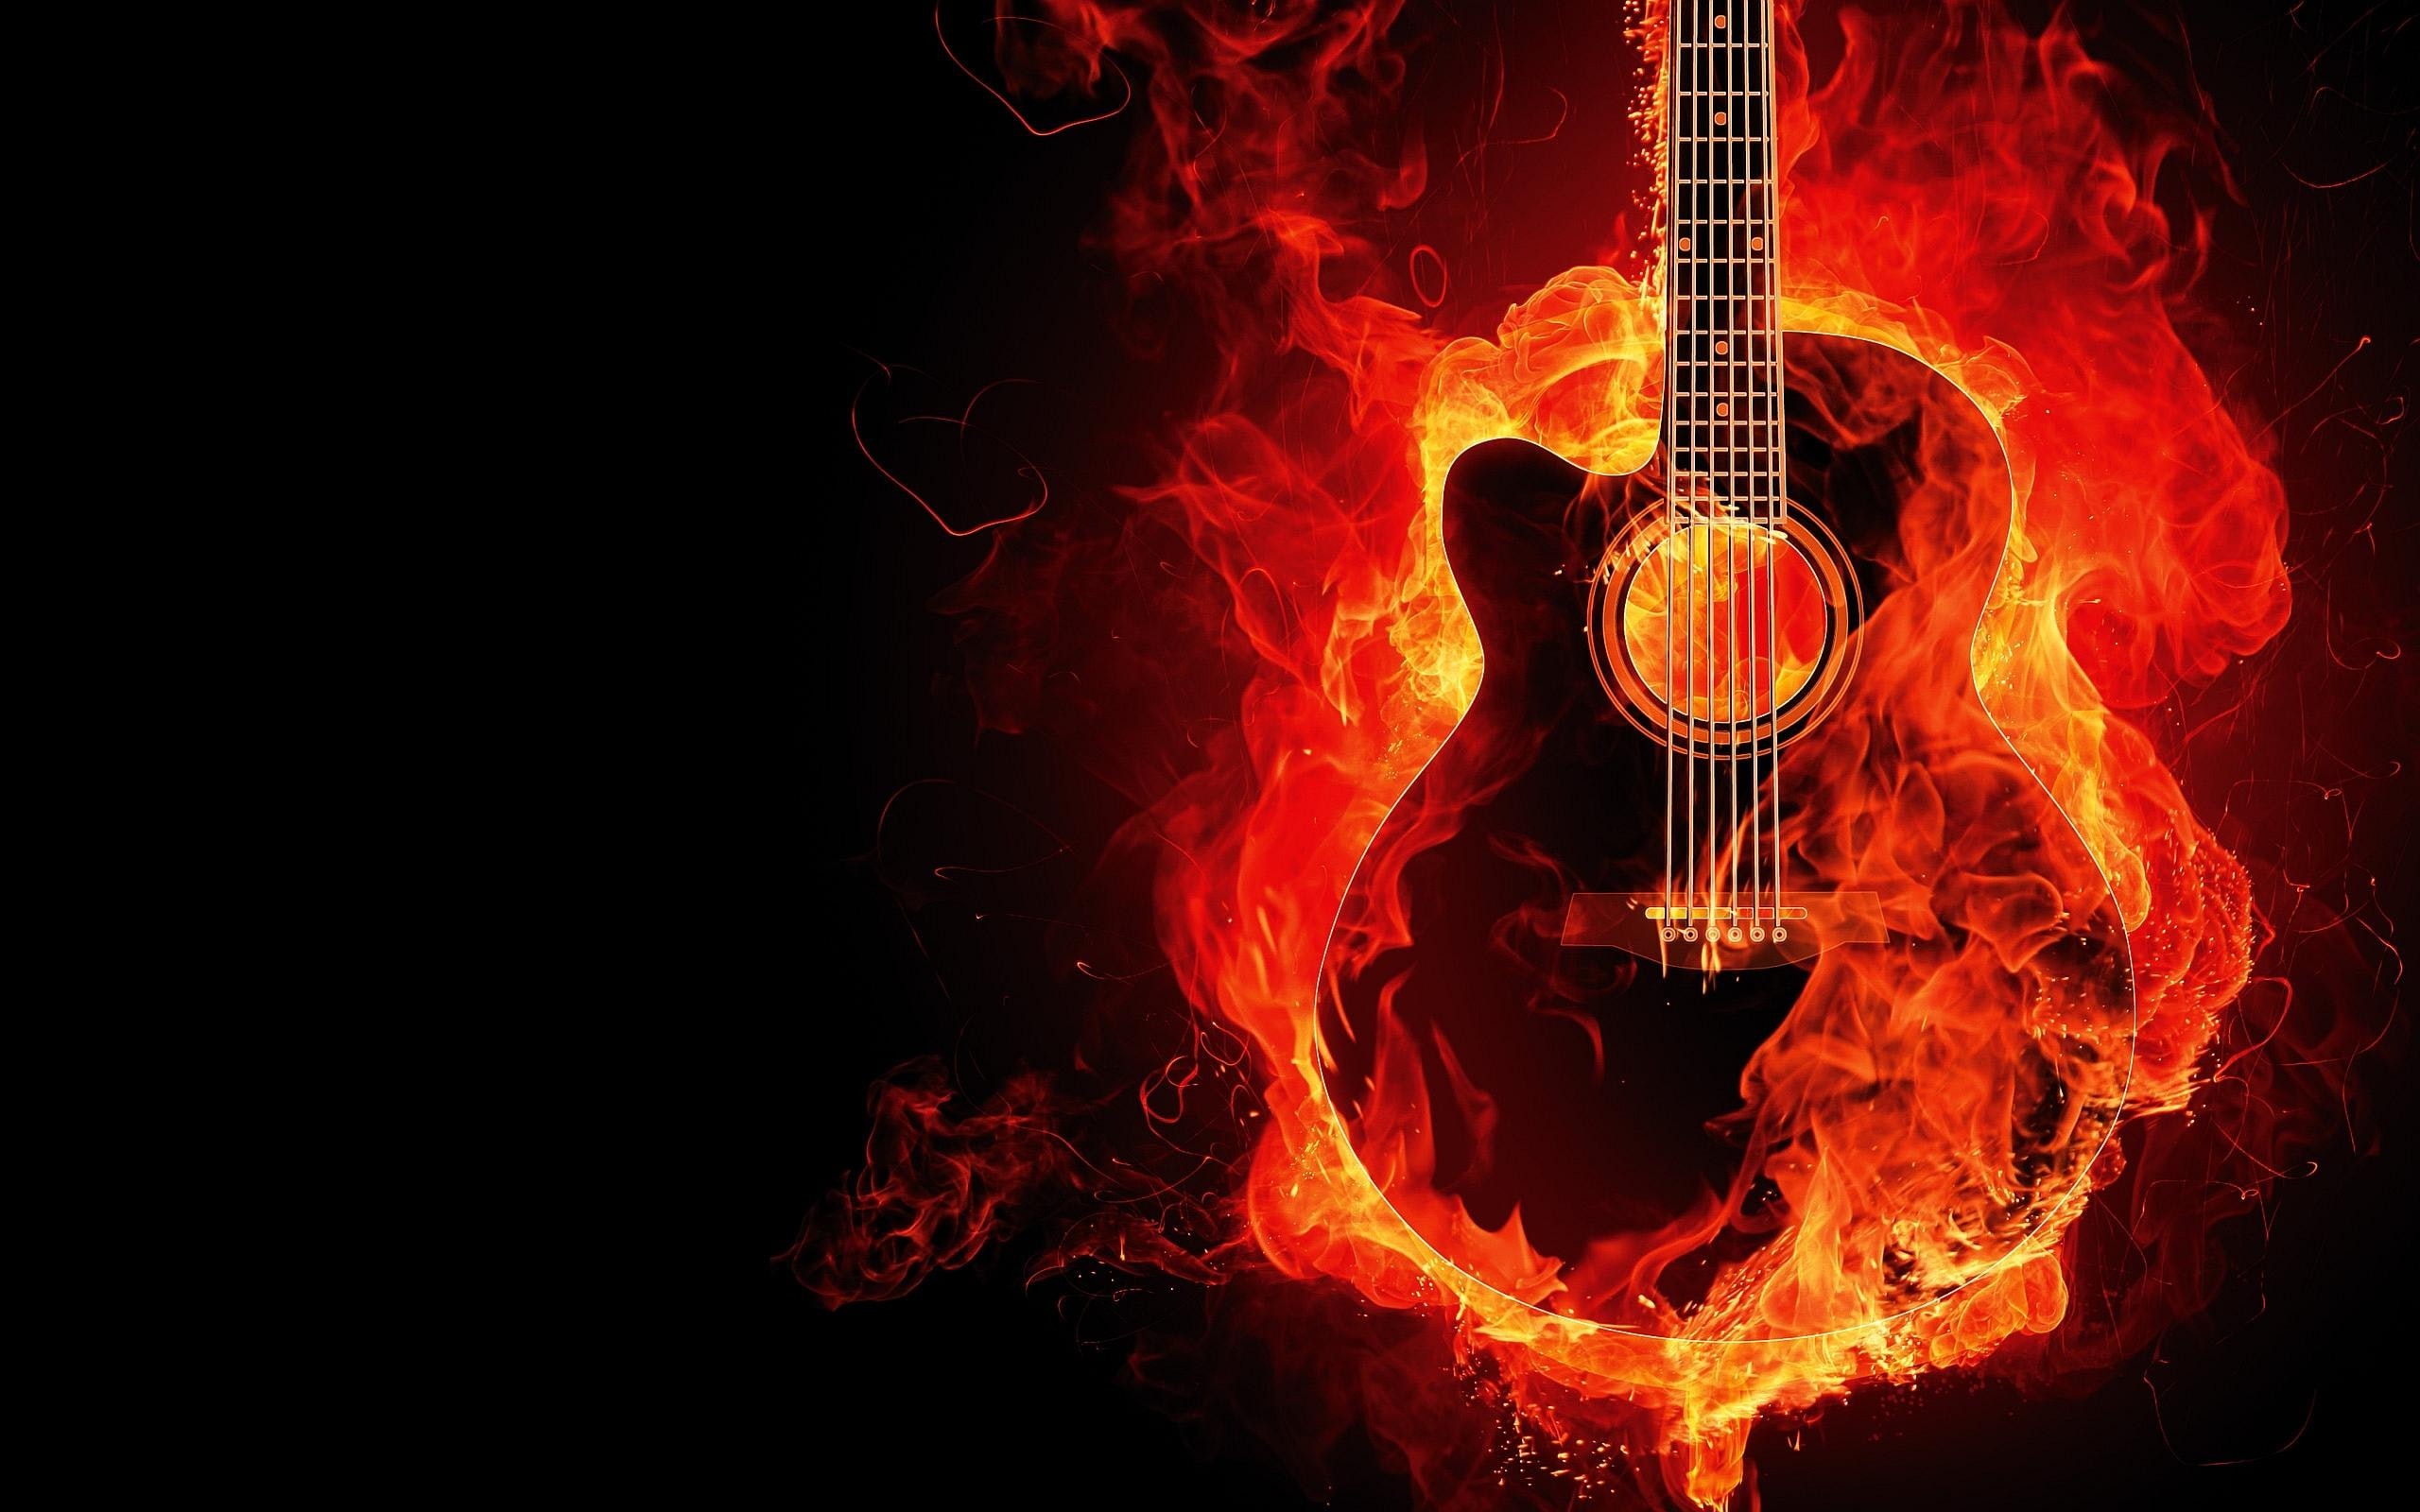 flaming guitar digital wallpaper